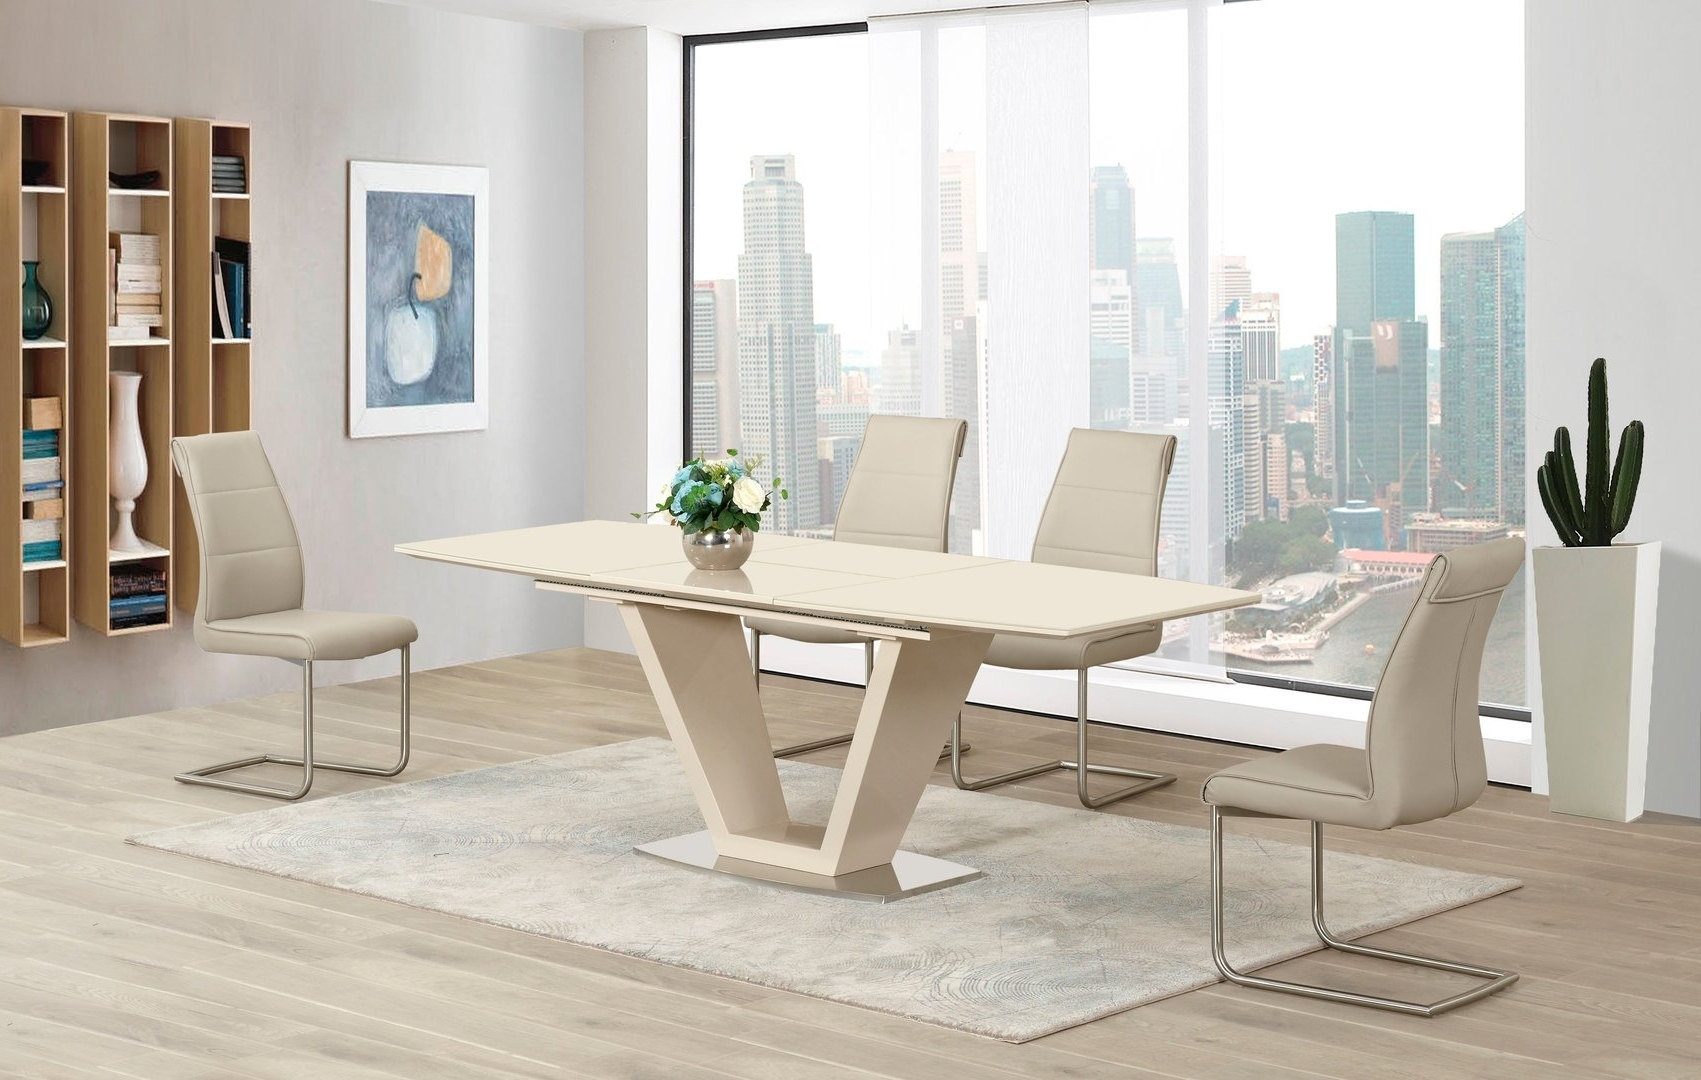 2018 Cream Extending Glass High Gloss Dining Table And 6 Taupe Chairs With Regard To Cream High Gloss Dining Tables (View 2 of 25)